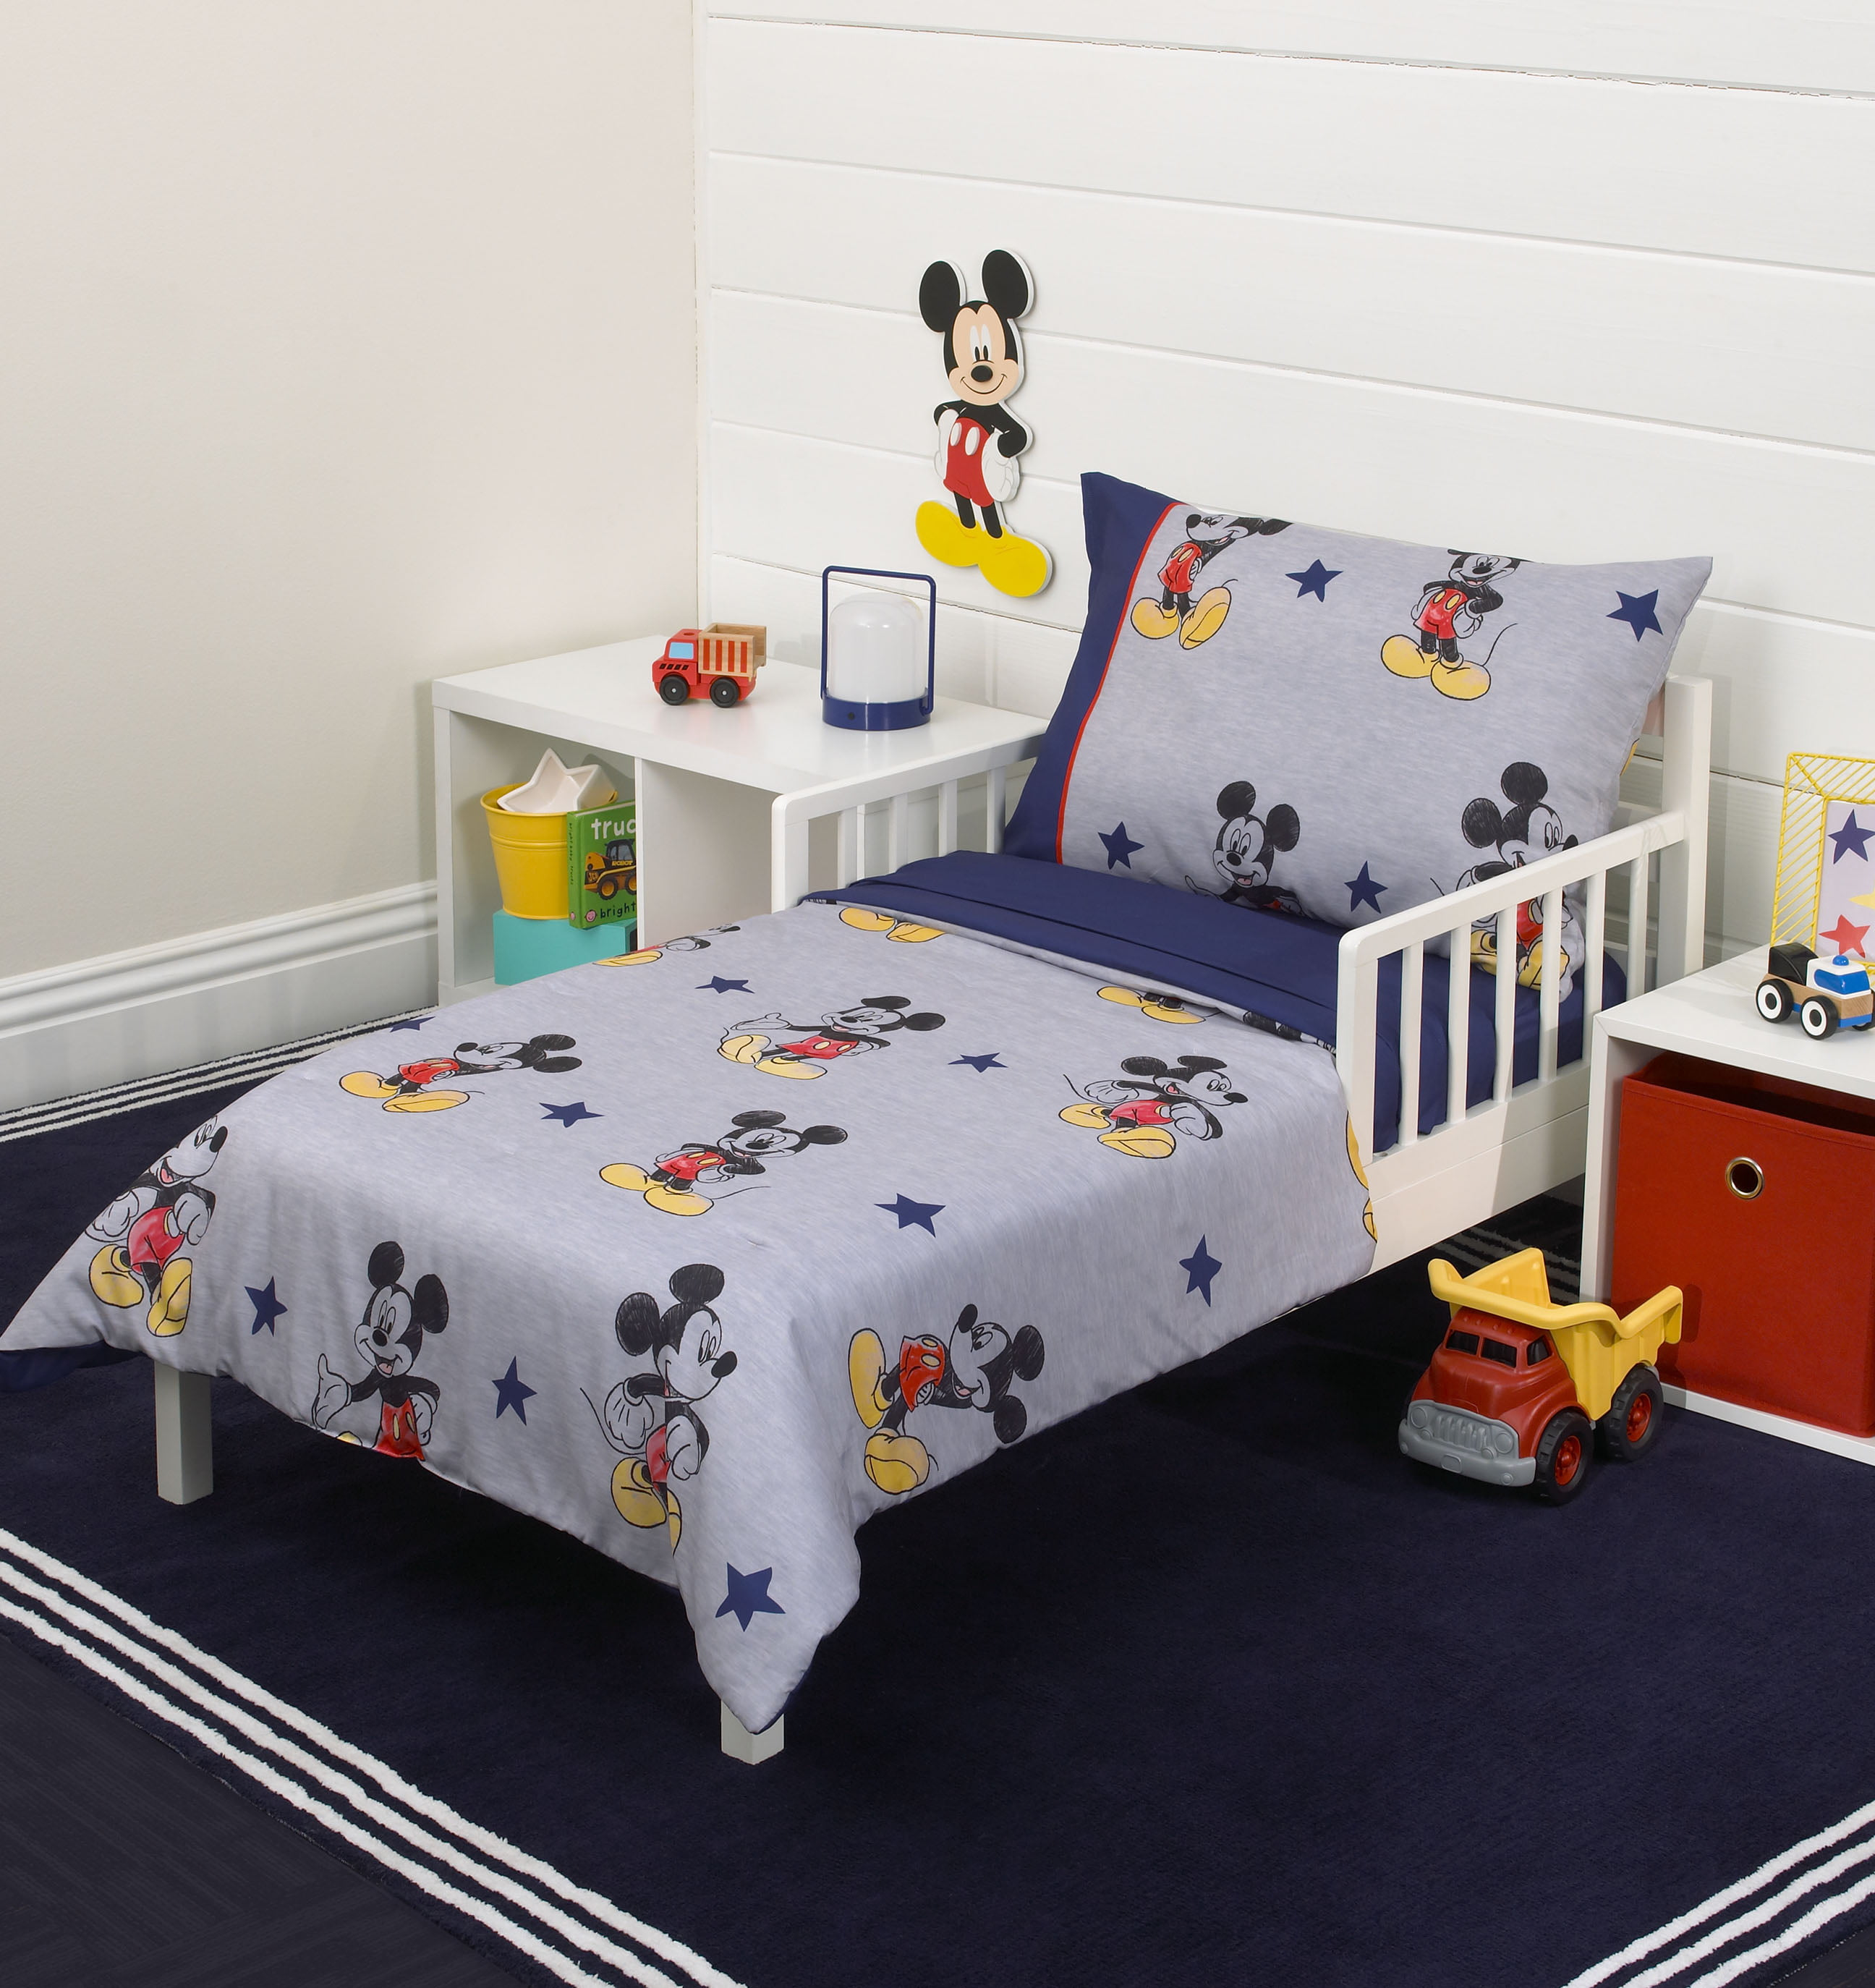 buy popular cb2e3 c081f Mickey Mouse 90th Birthday 4-Piece Toddler Bed Set - Quilted Comforter,  Fitted Sheet, Flat Sheet and Standard Size Pillowcase